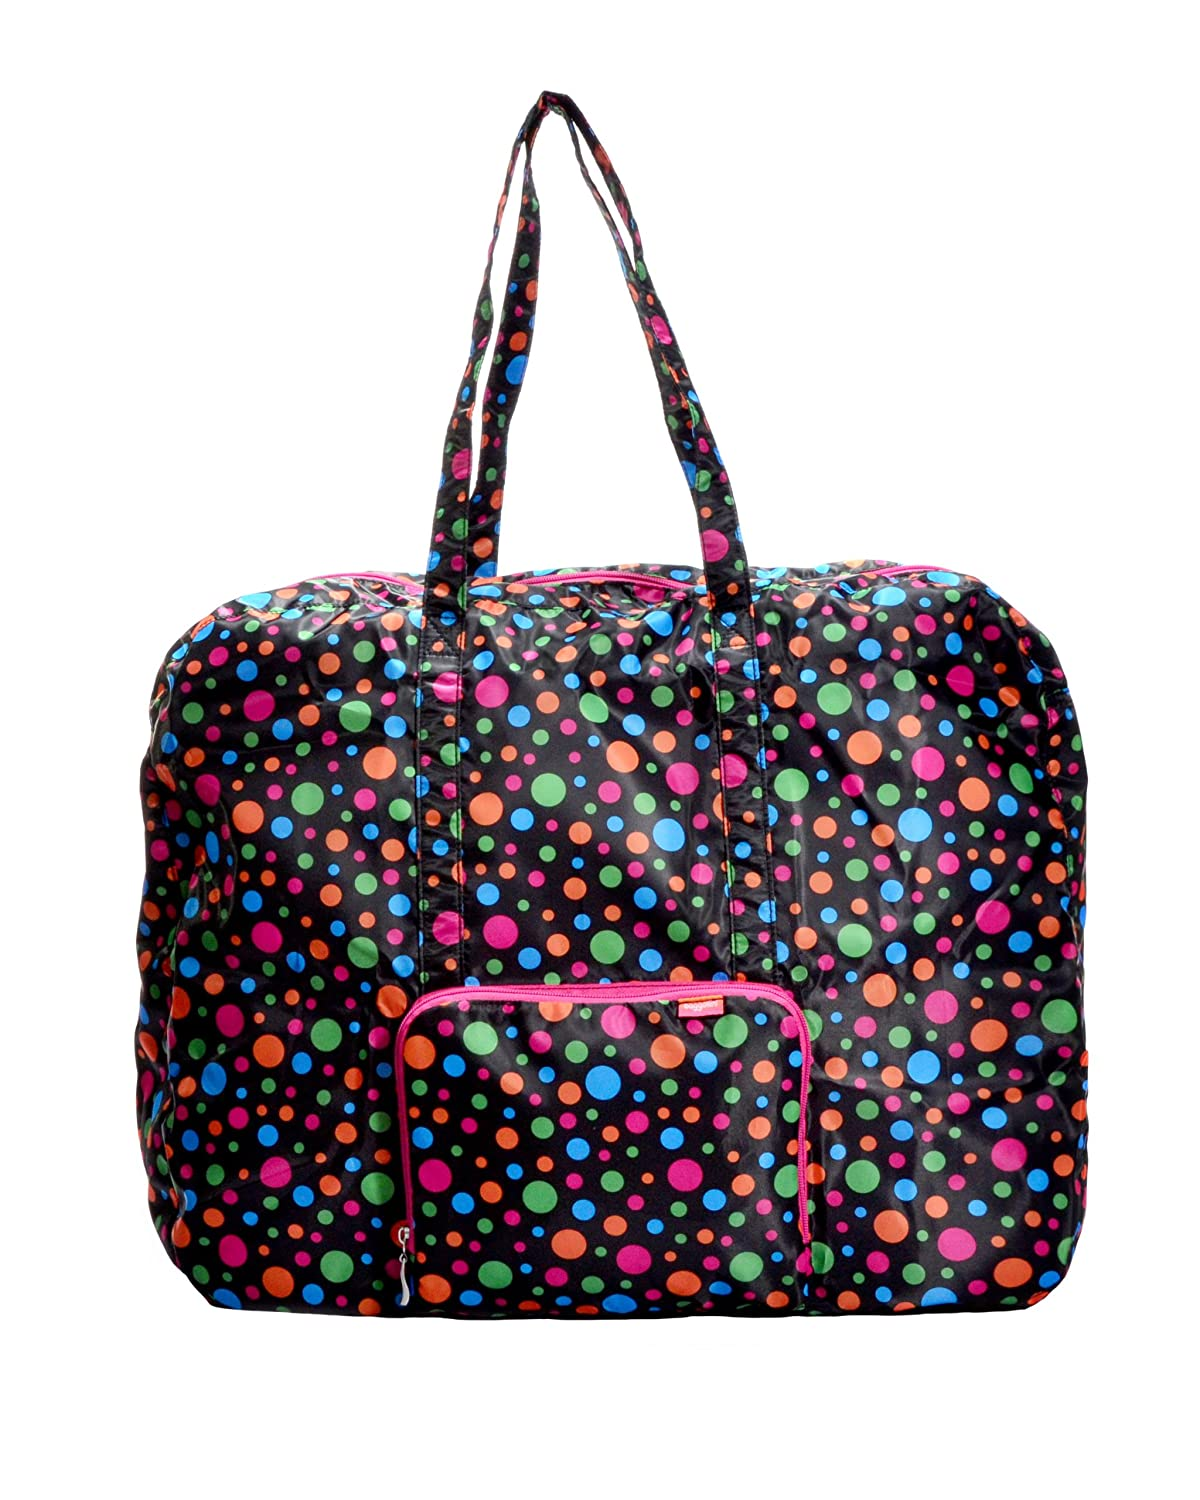 Amazon Baggallini Luggage Large Zip Out Travel Bag Polka Dot One Size Shoes